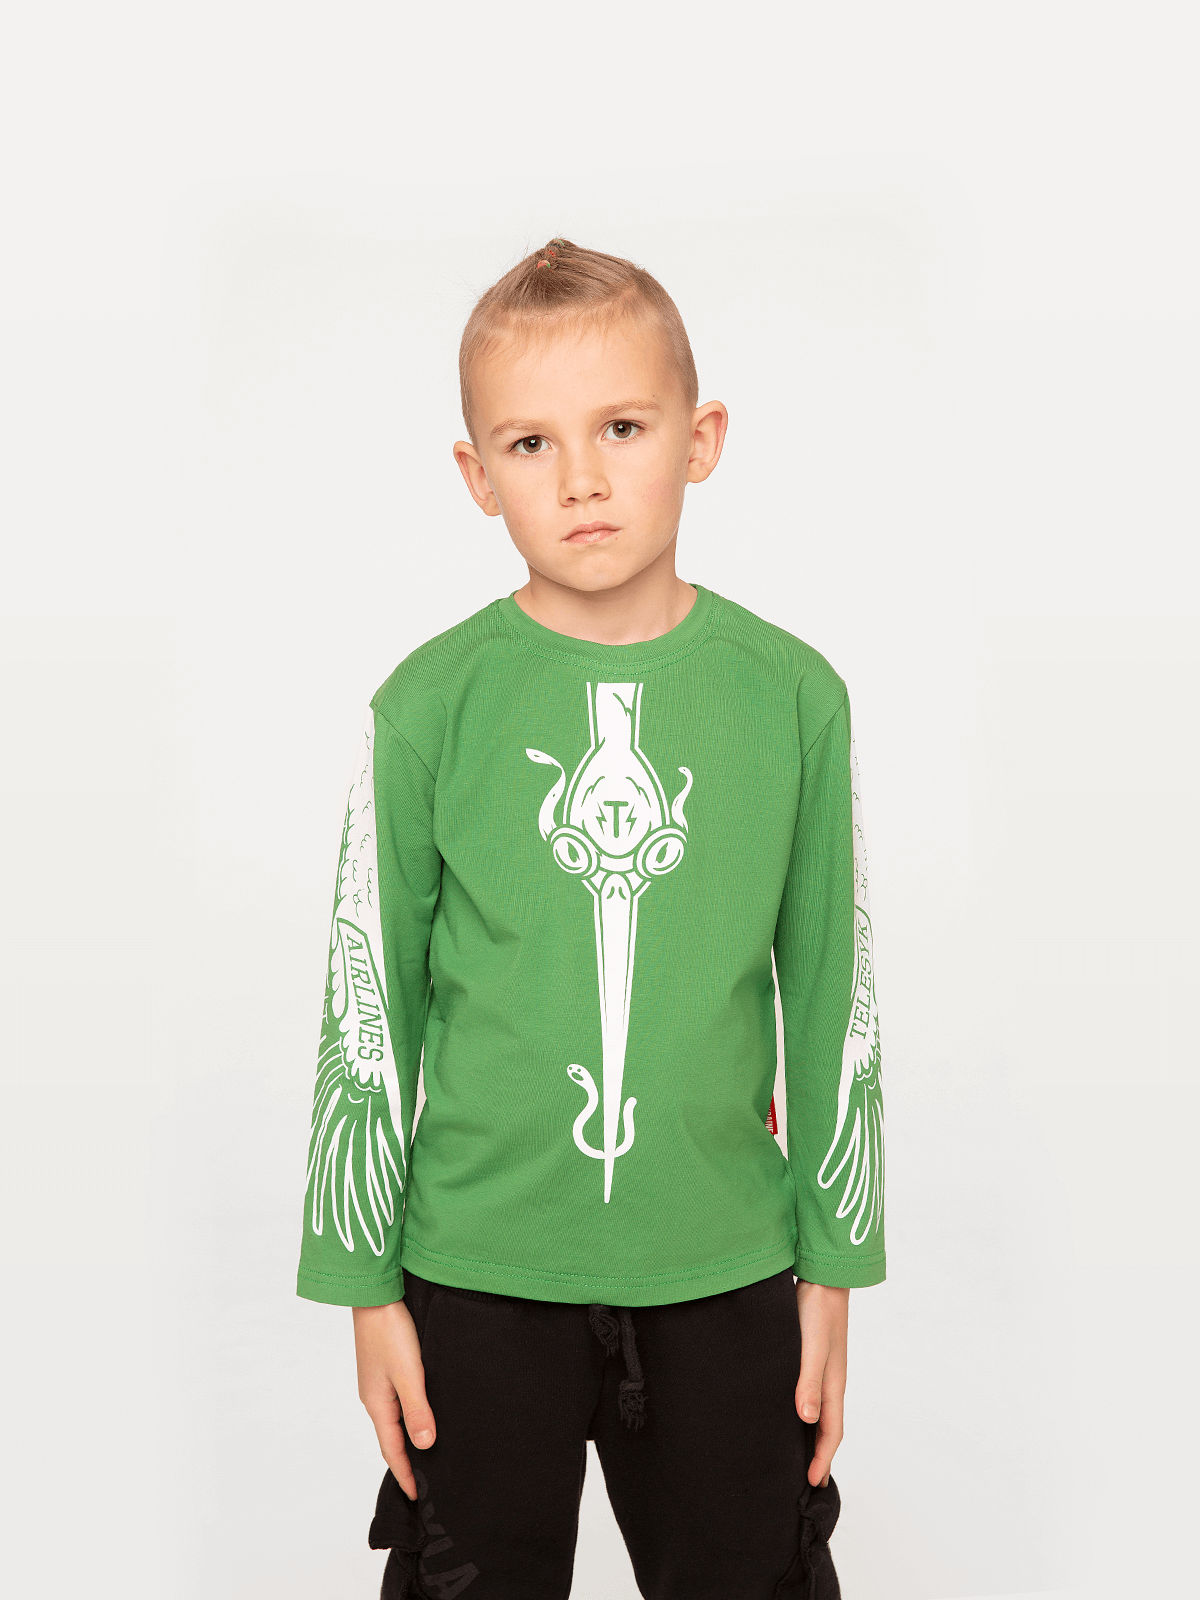 Kids Long Sleeves Stork. Color green. Long sleeve: unisex, well suited for both boys and girls.